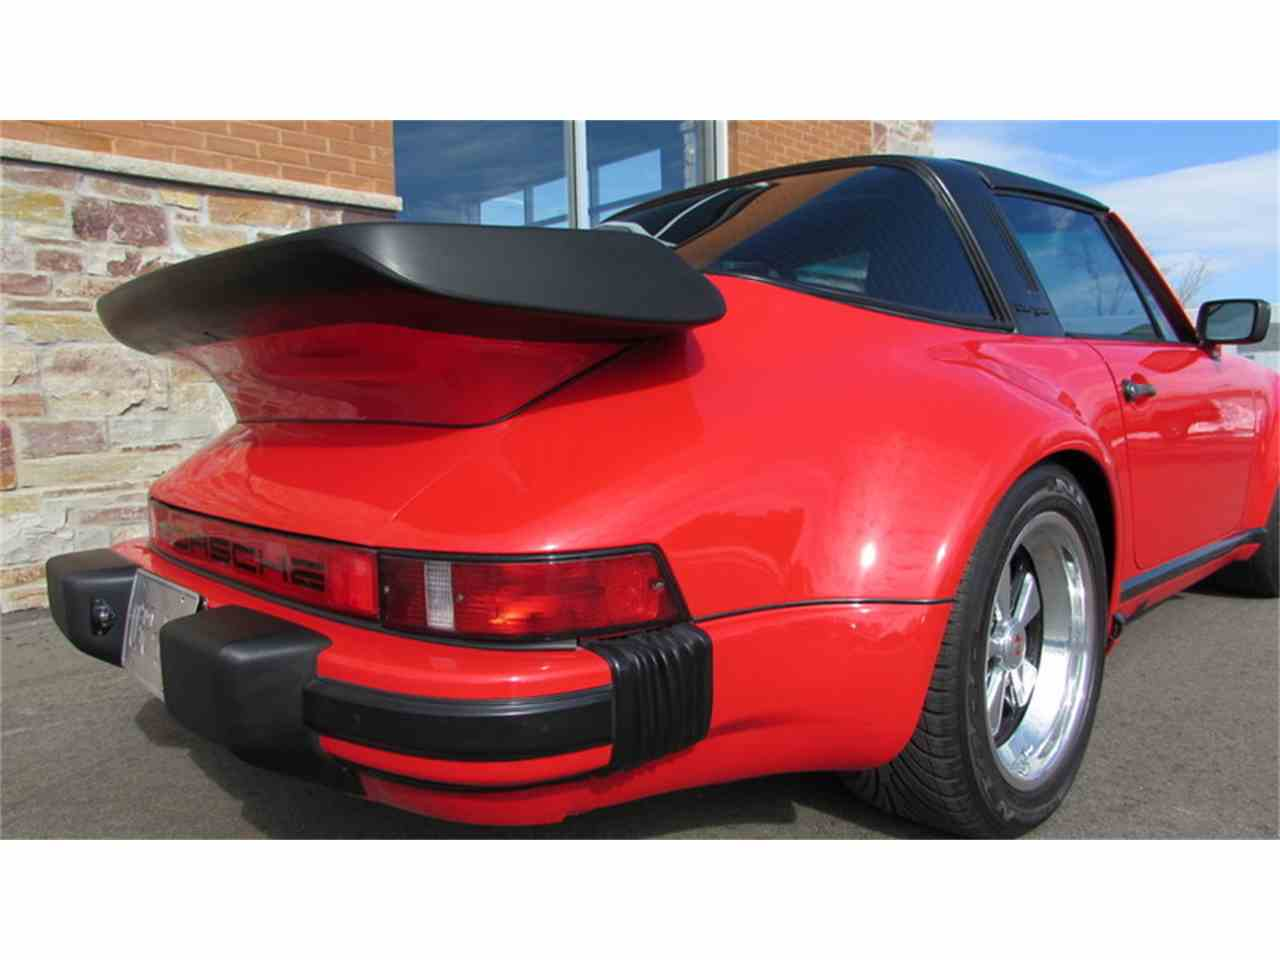 Large Picture of 1986 911 located in Big Bend Wisconsin Auction Vehicle Offered by Jamie's 50/50 Motorsports - MBV8